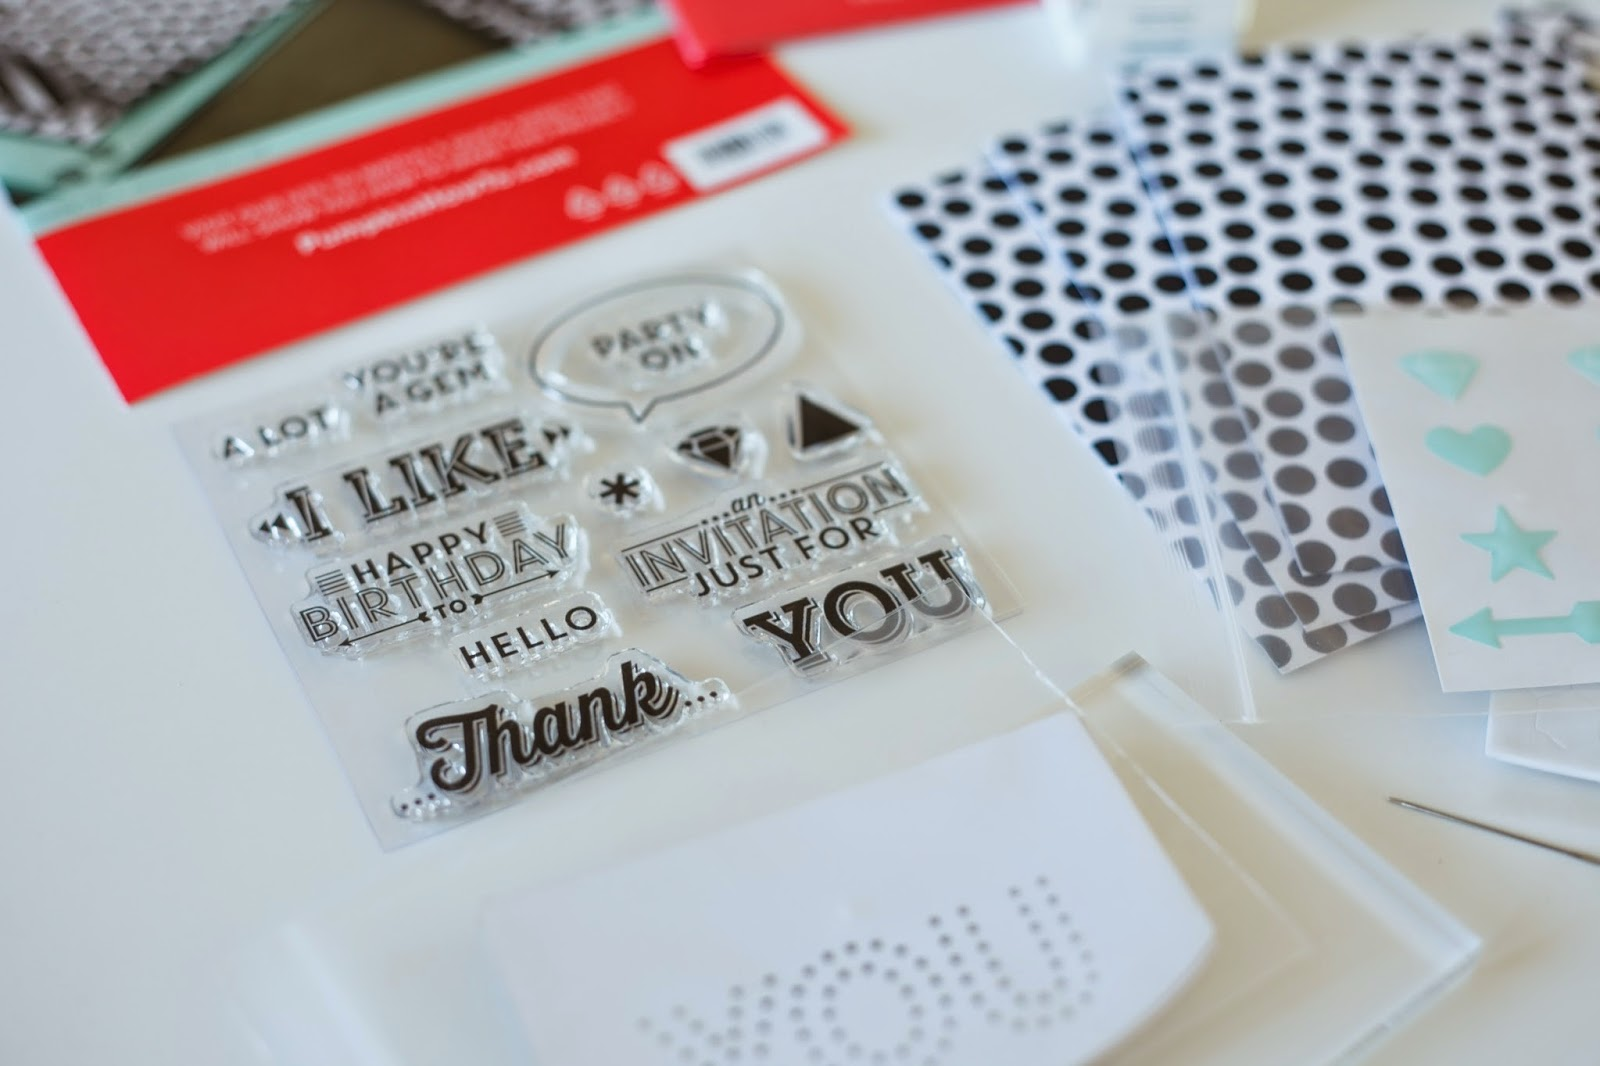 Sew You stamps